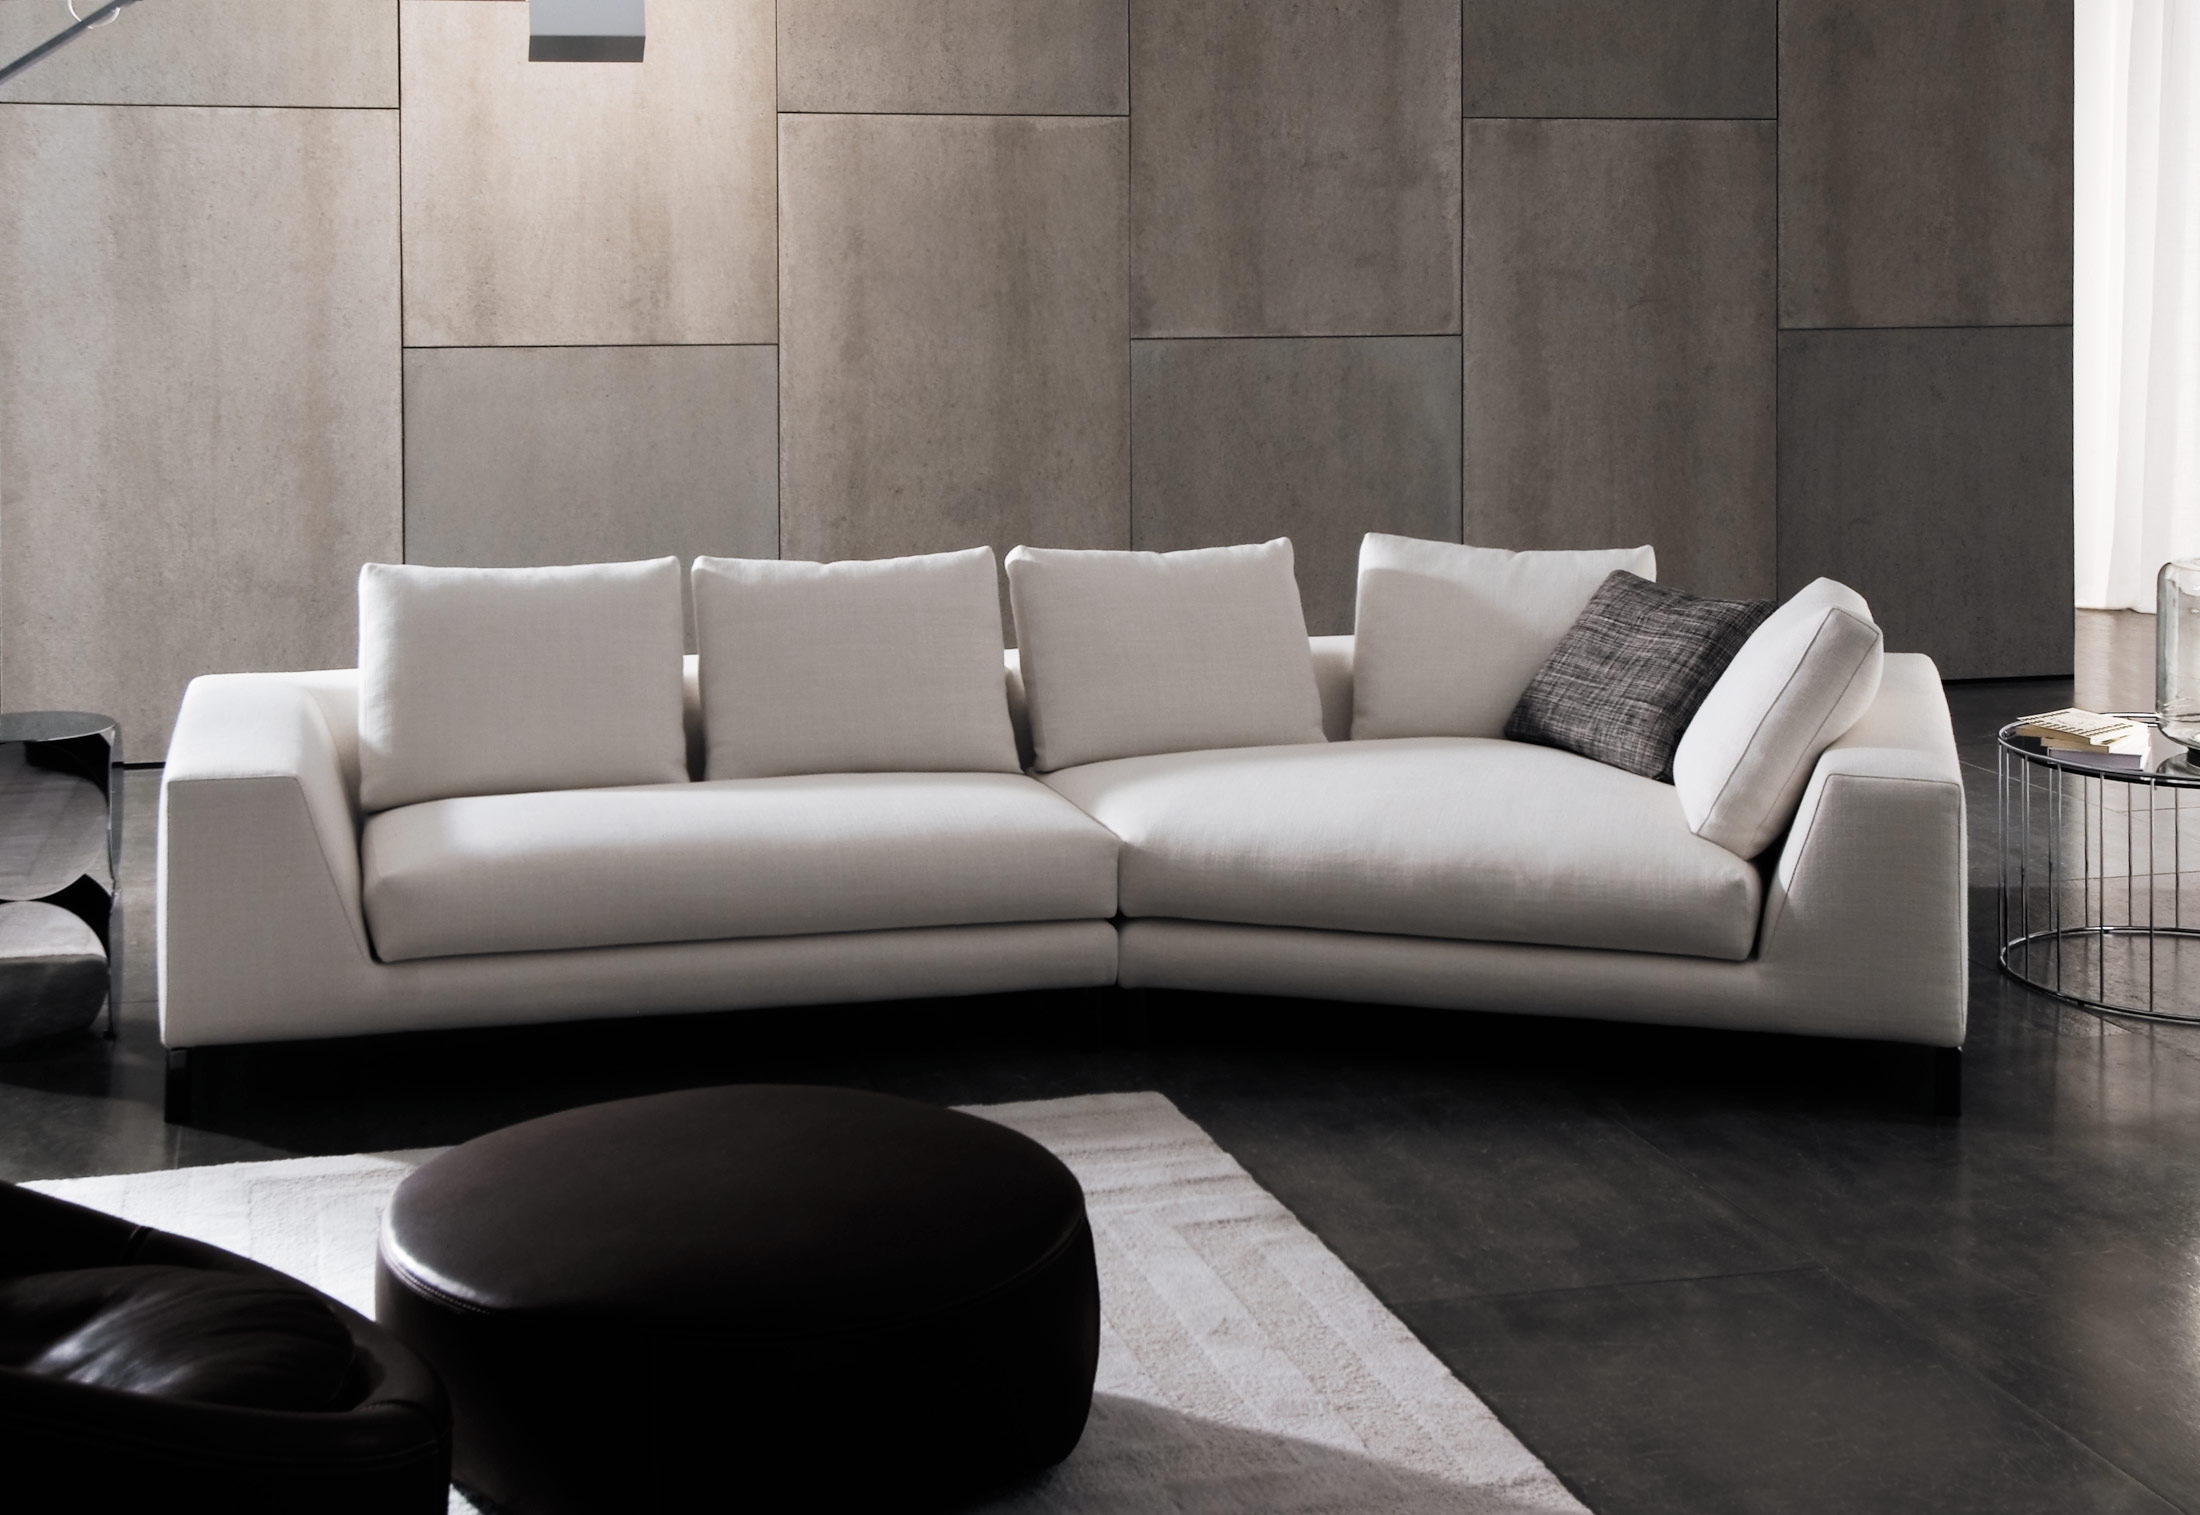 Stylepark In Best And Newest Hamilton Sectional Sofas (View 15 of 20)